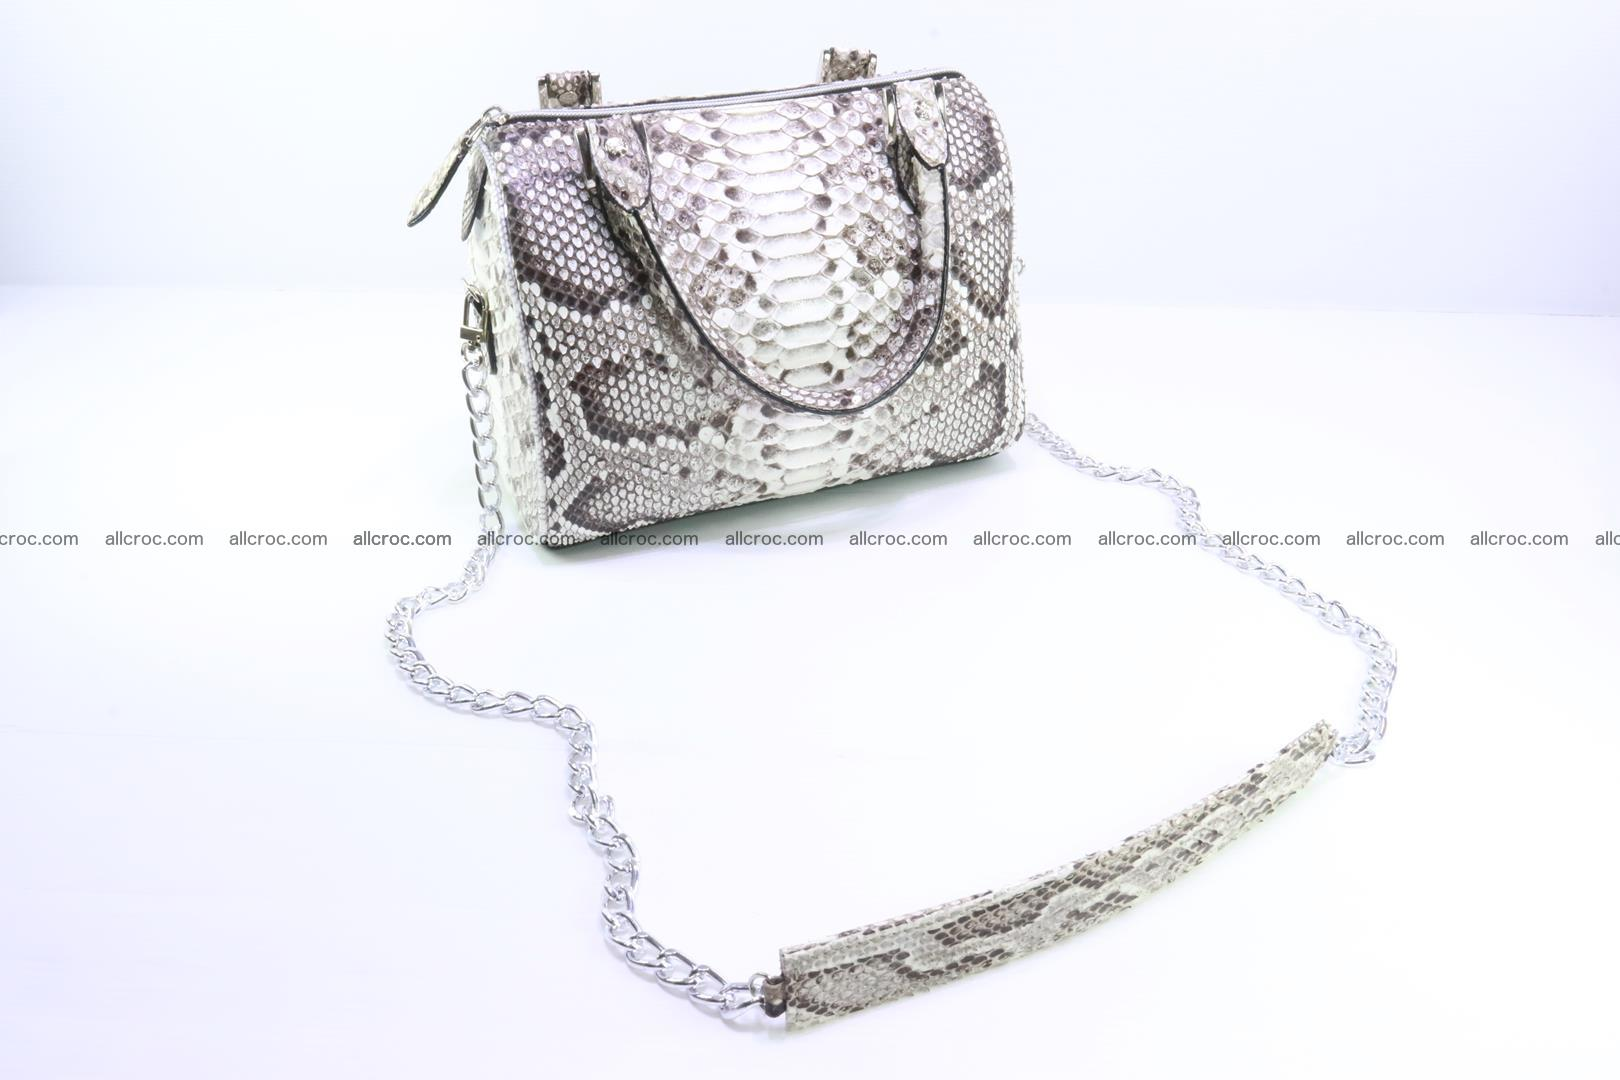 Ladies handbag, valise from genuine python skin MINI 209 Foto 5